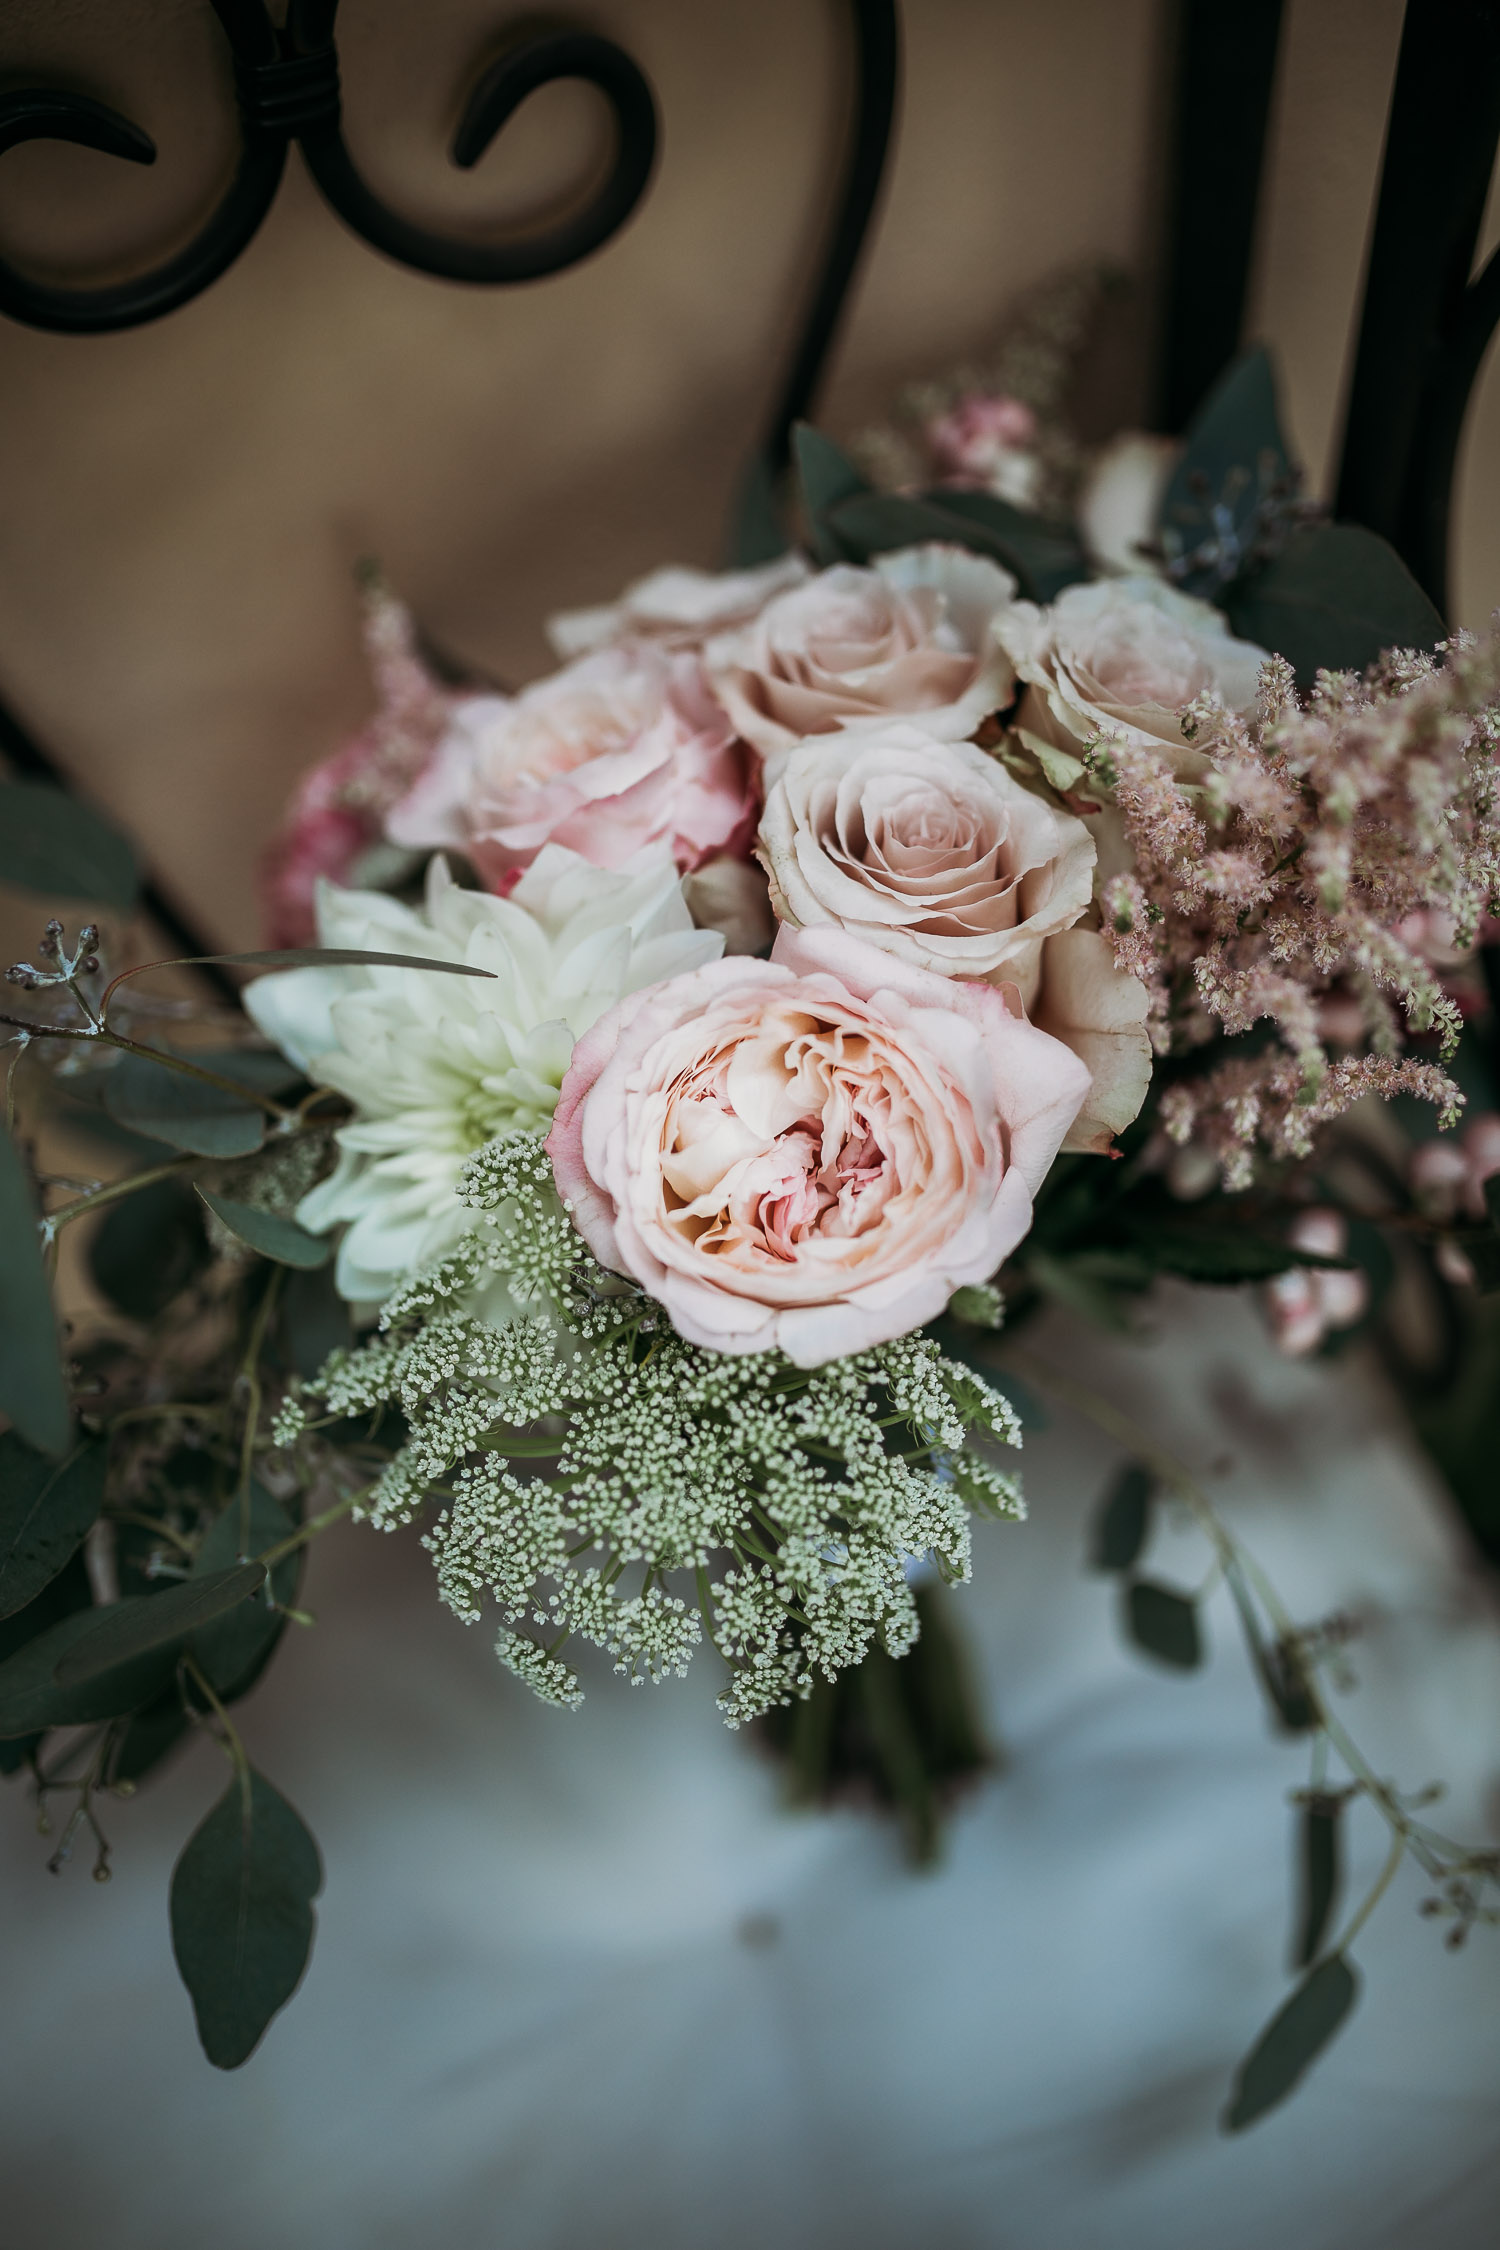 Pale pink peonies and white roses with eucalyptus for a romantica bouquet at La Villa Hotel